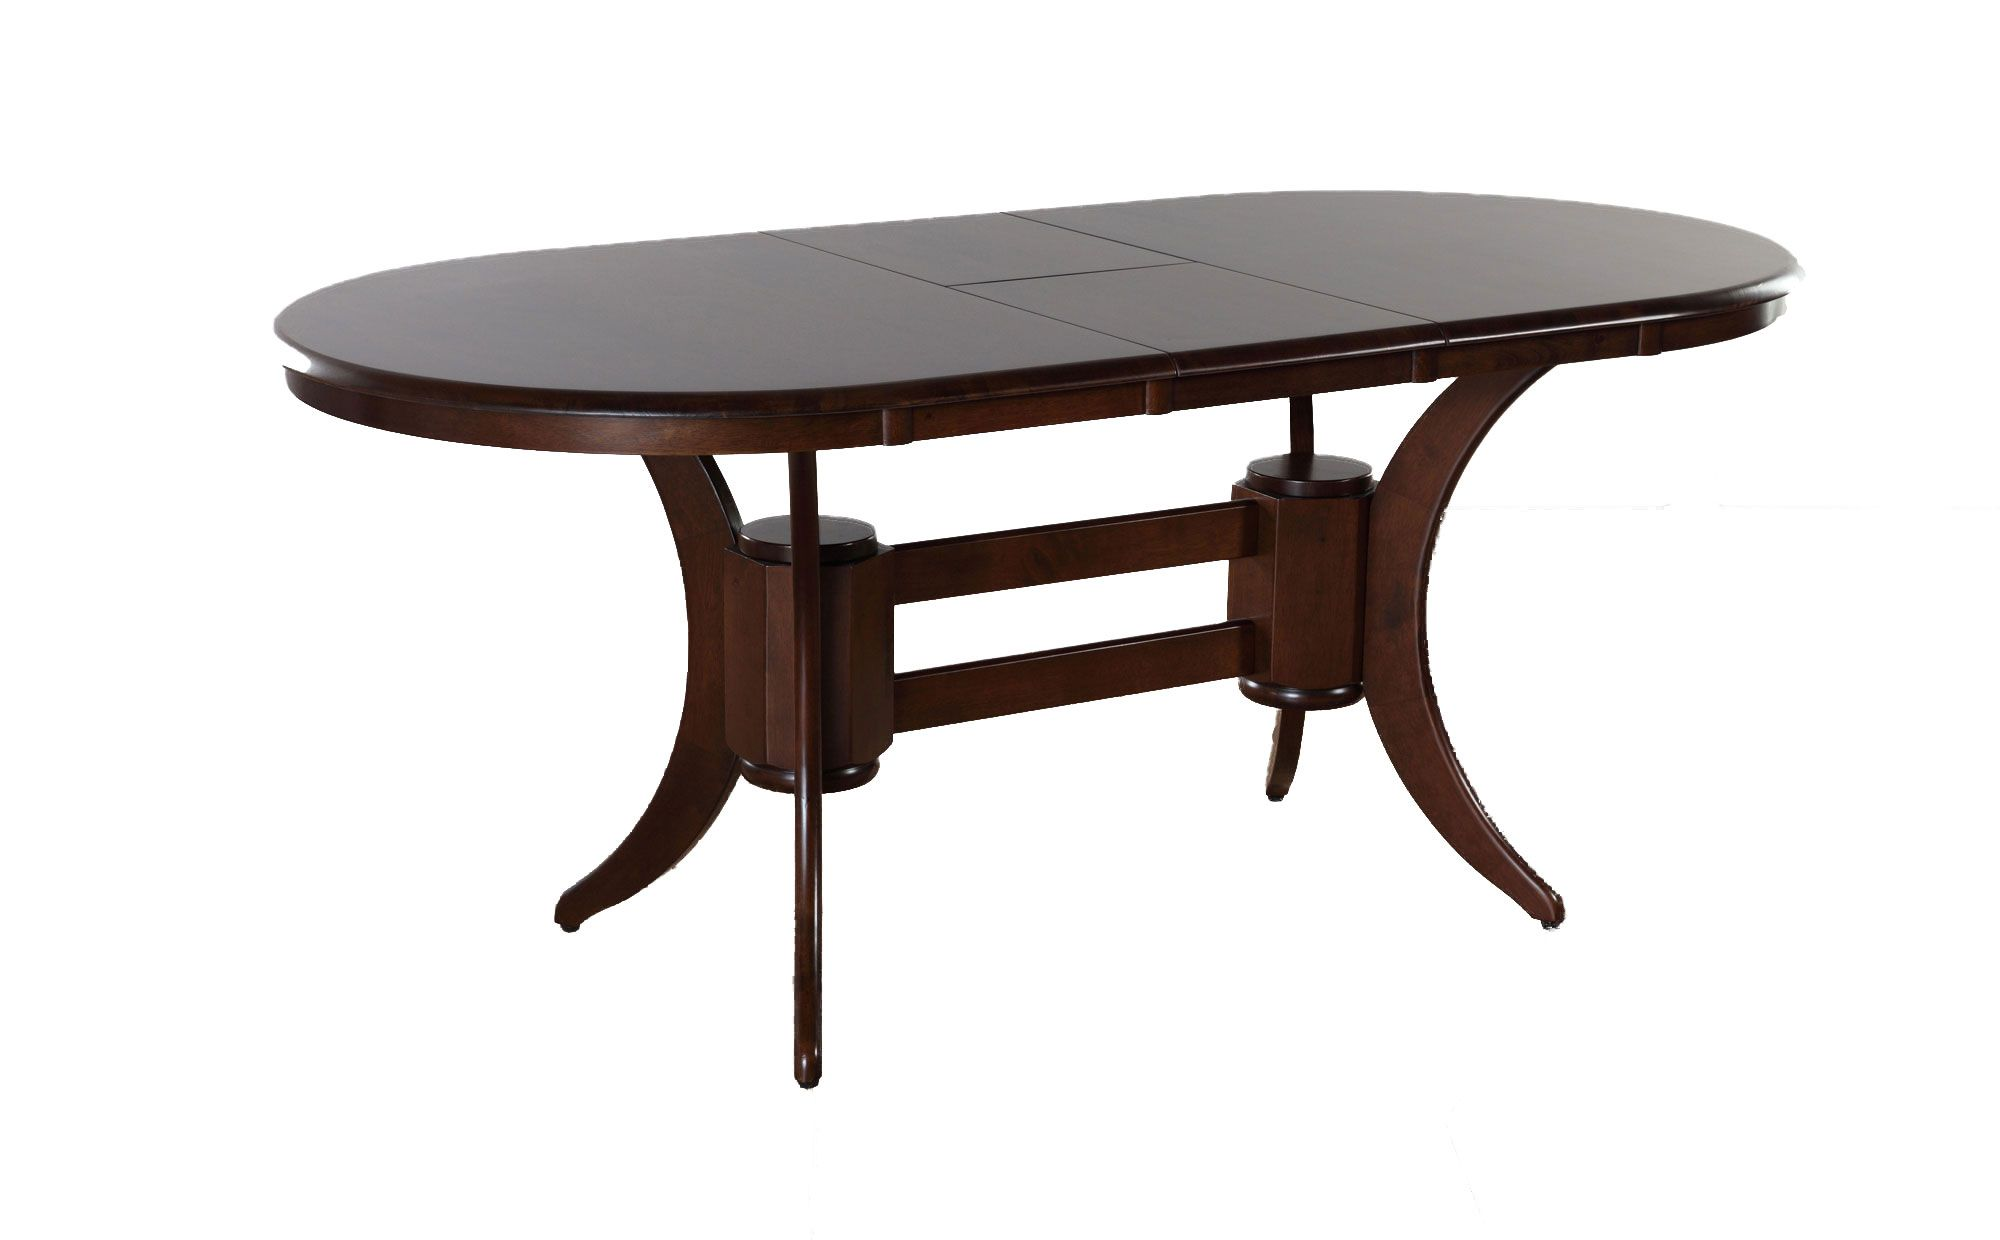 Townhouse Oval Dark Wood 150180cm Extending Dining Table